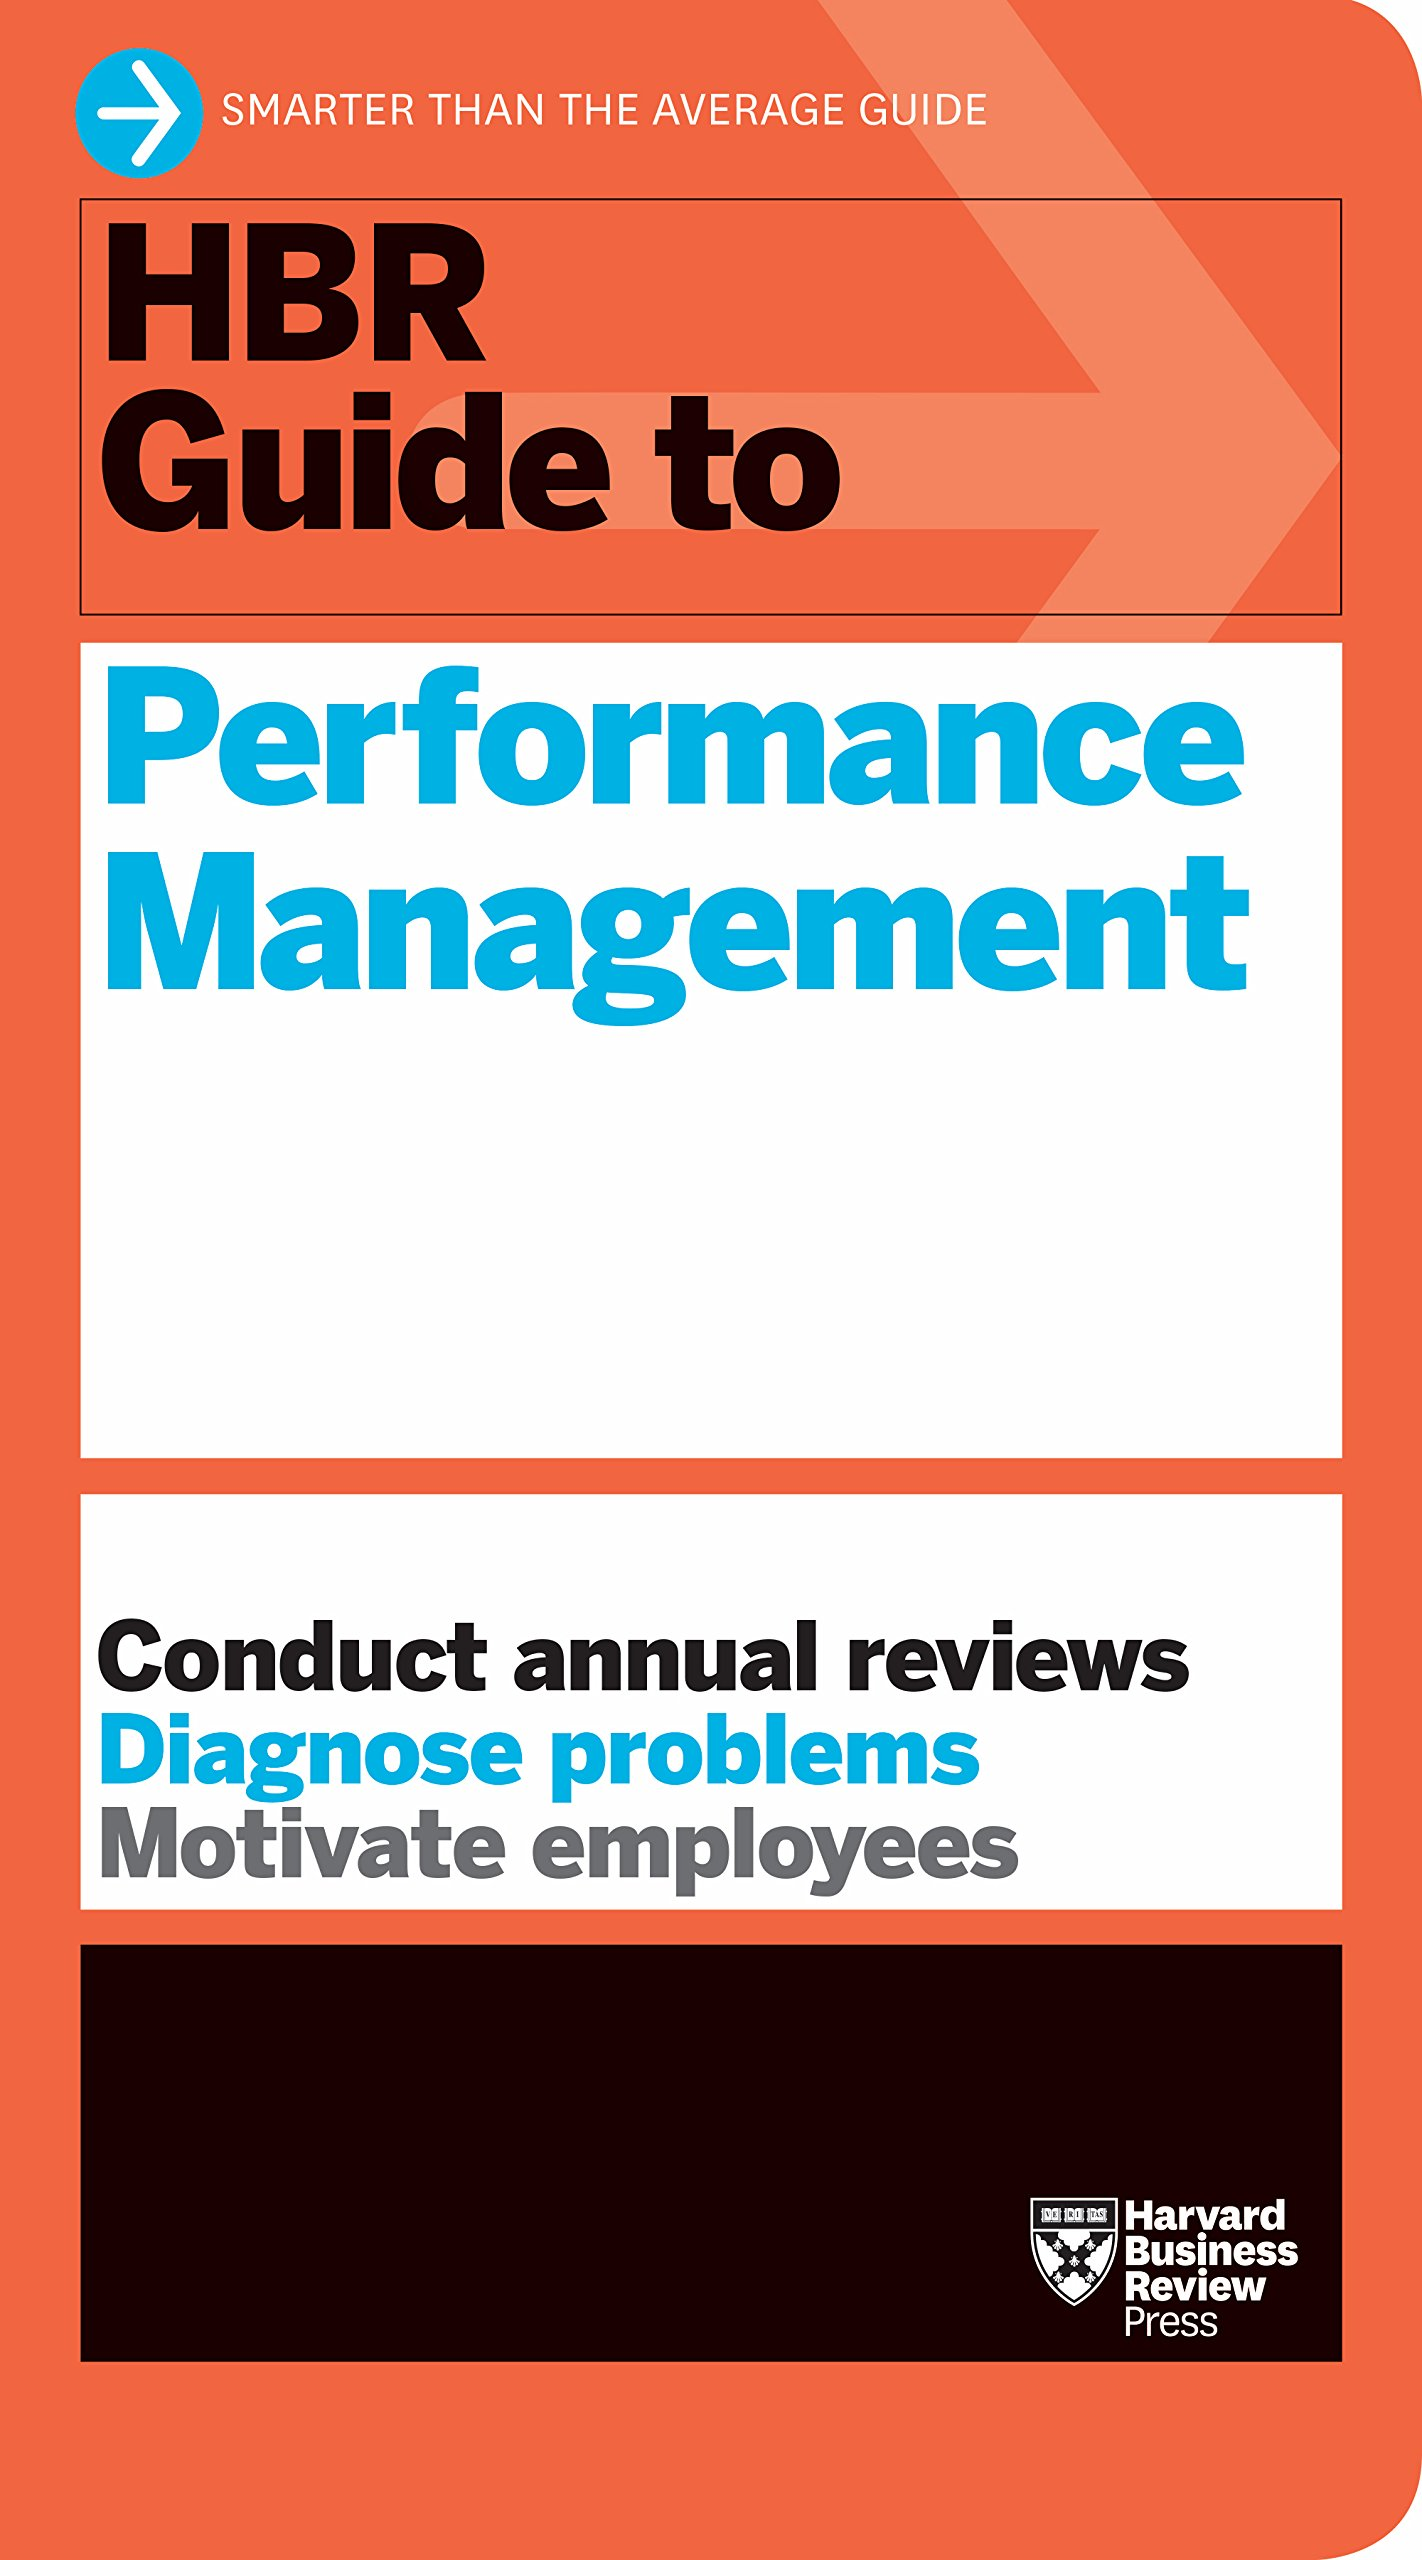 How performance management is killing performance and what to do hbr guide to performance management hbr guide series fandeluxe Choice Image